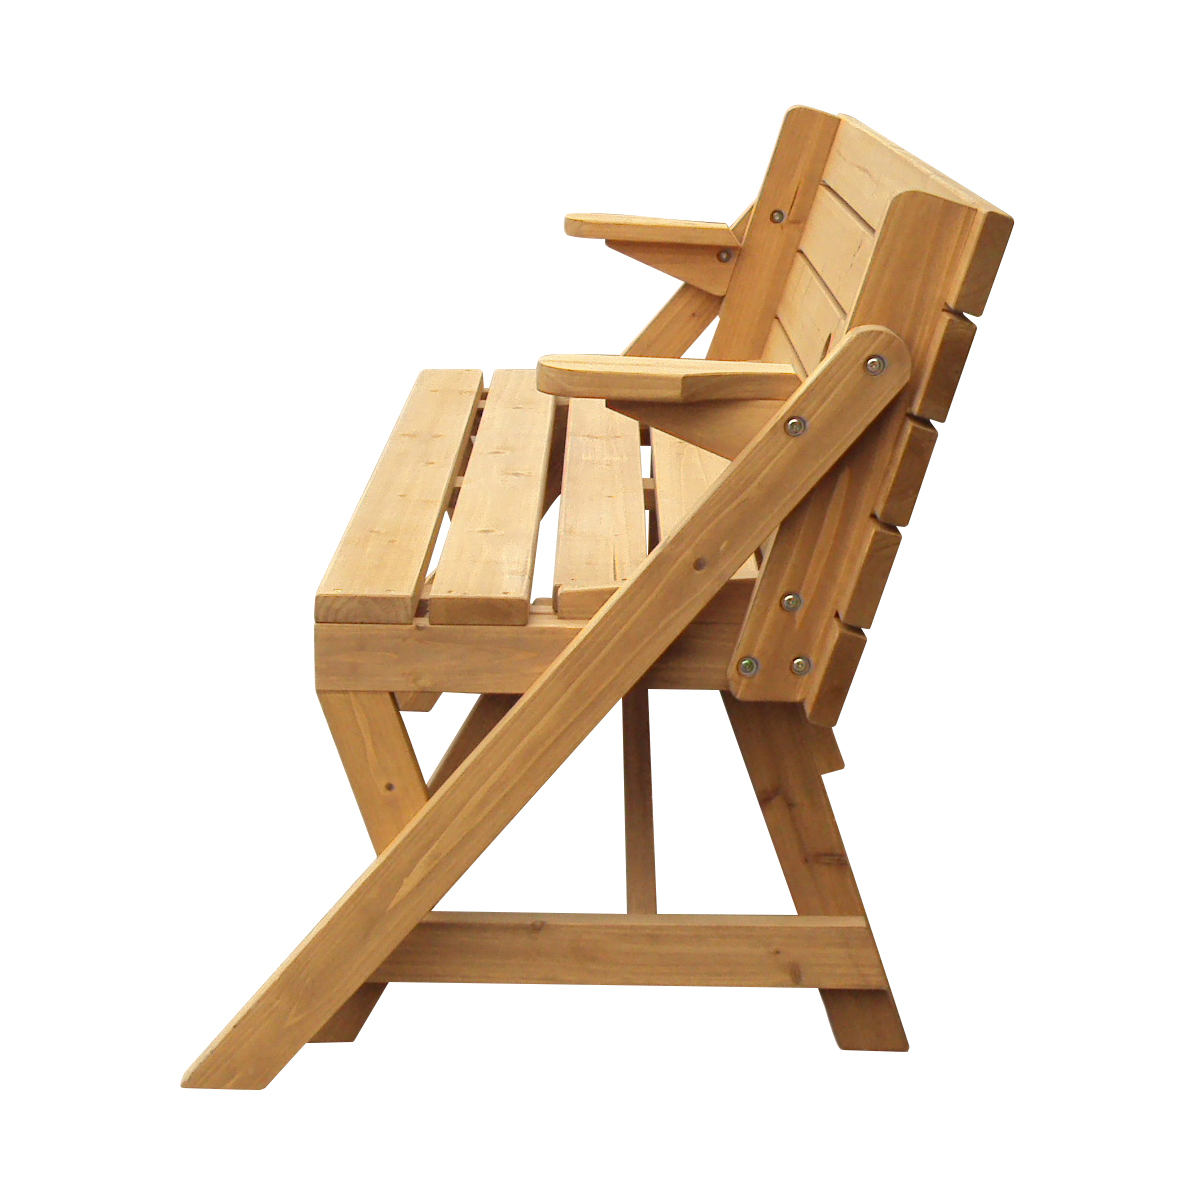 merry garden adirondack chair baby sitting for car products partly assembled interchangeable picnic